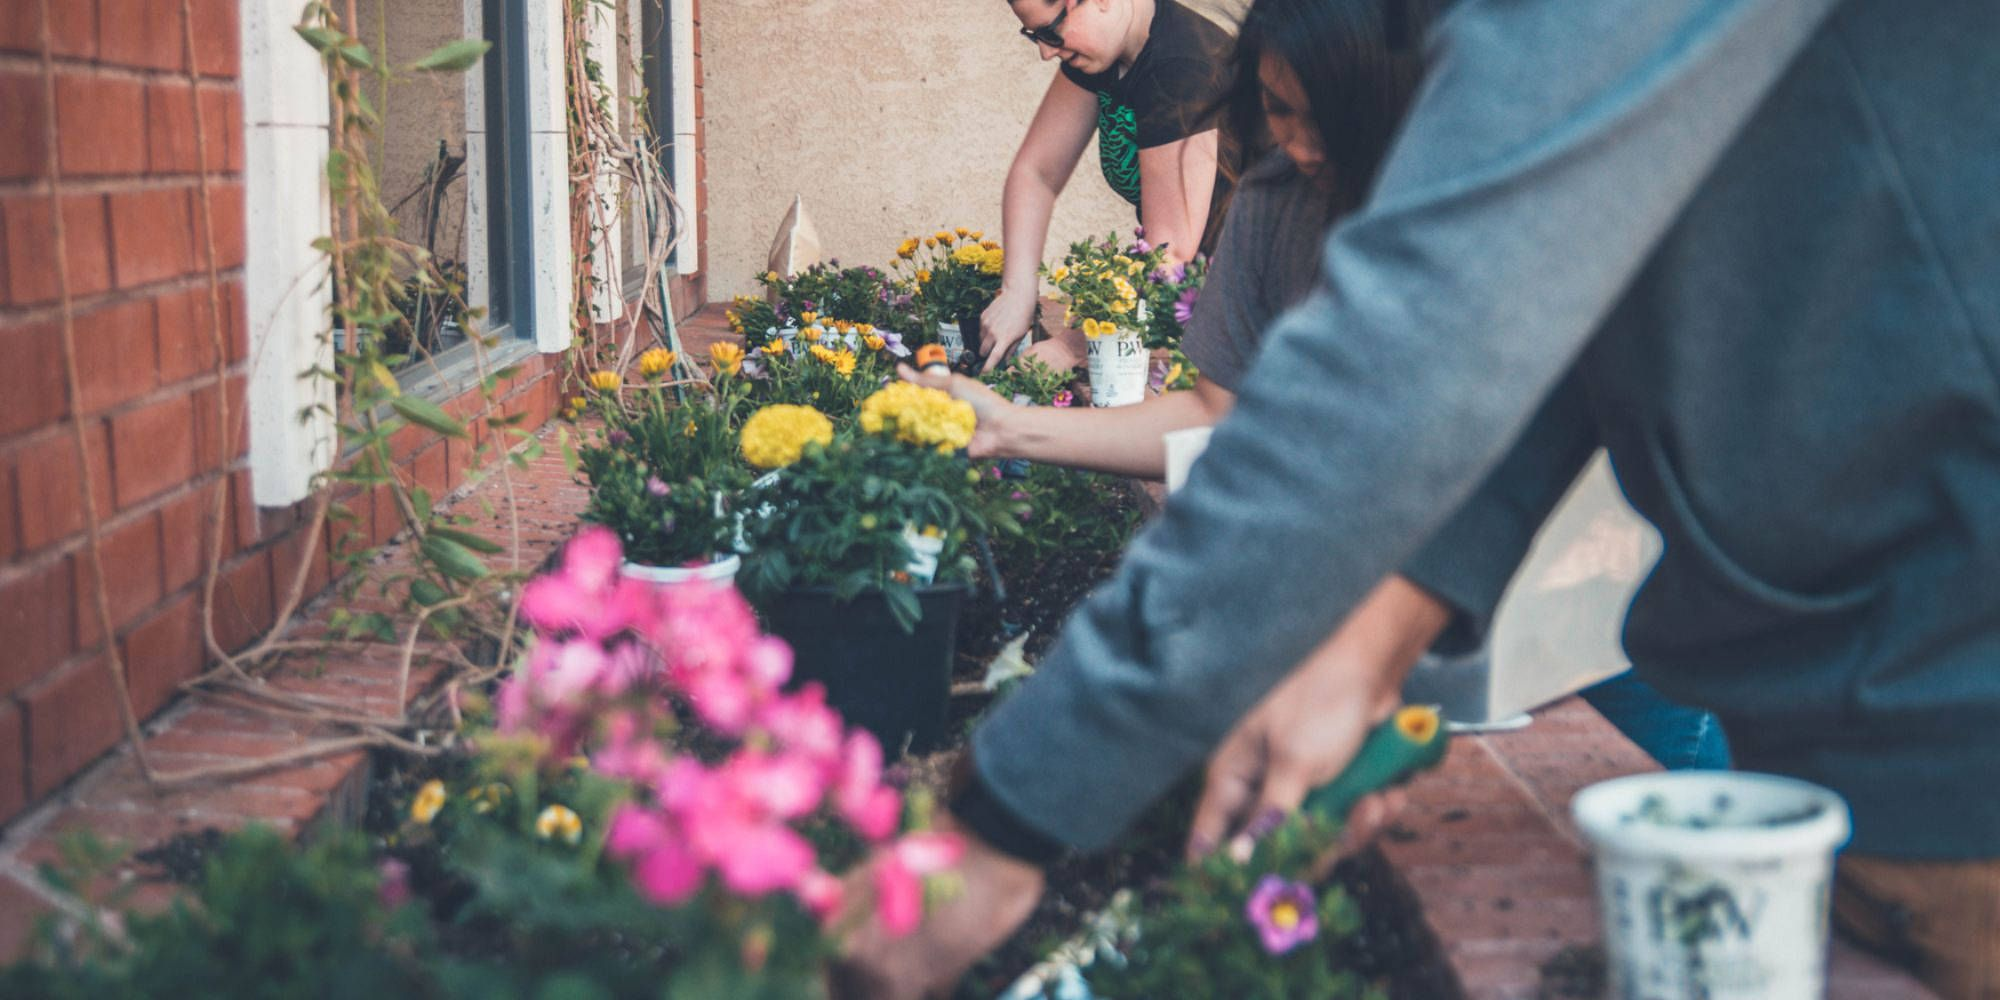 3 ways to create a more eco-conscious community